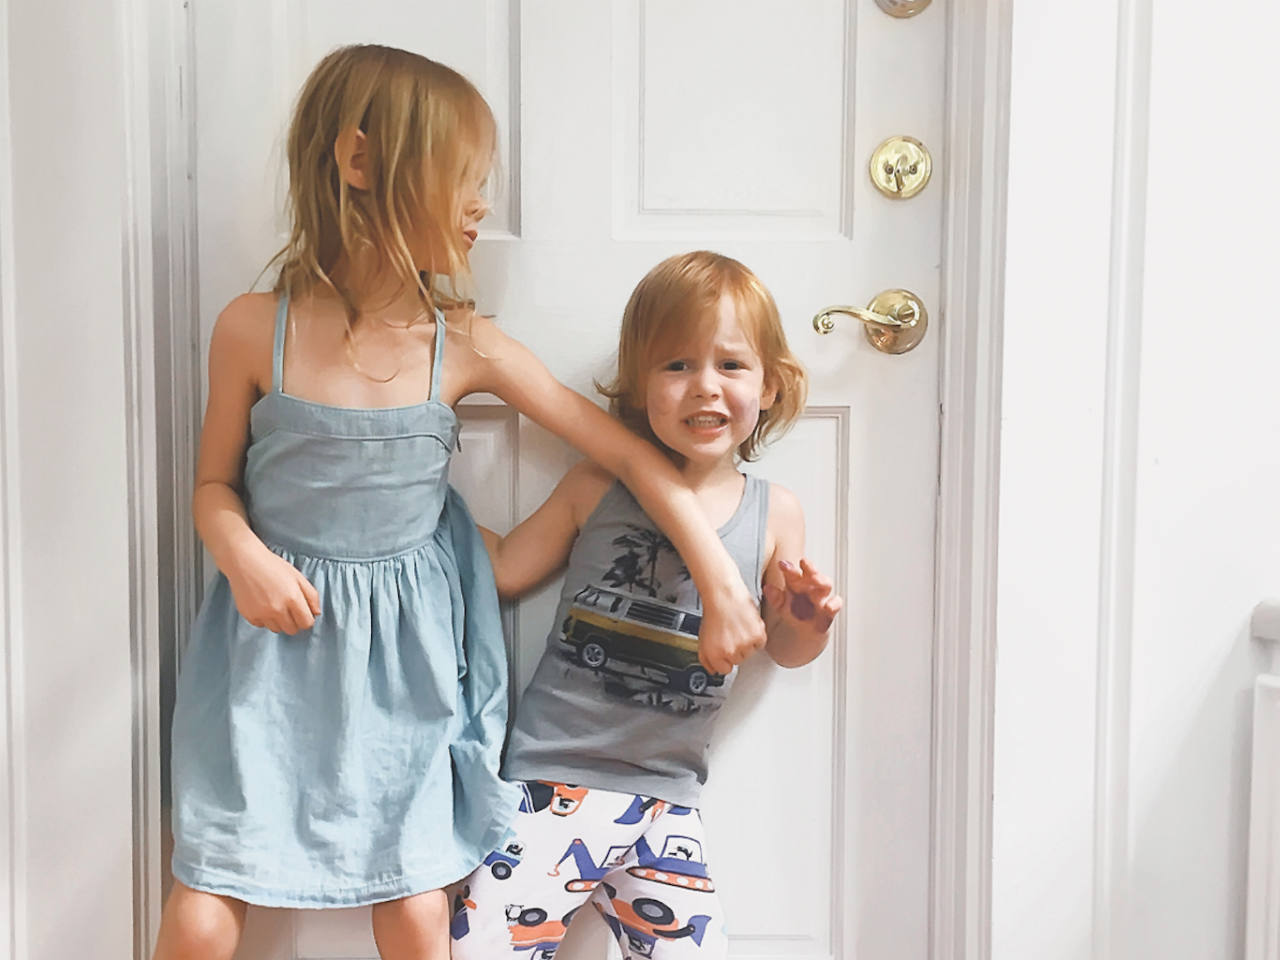 Two siblings pushing each other in front of the door